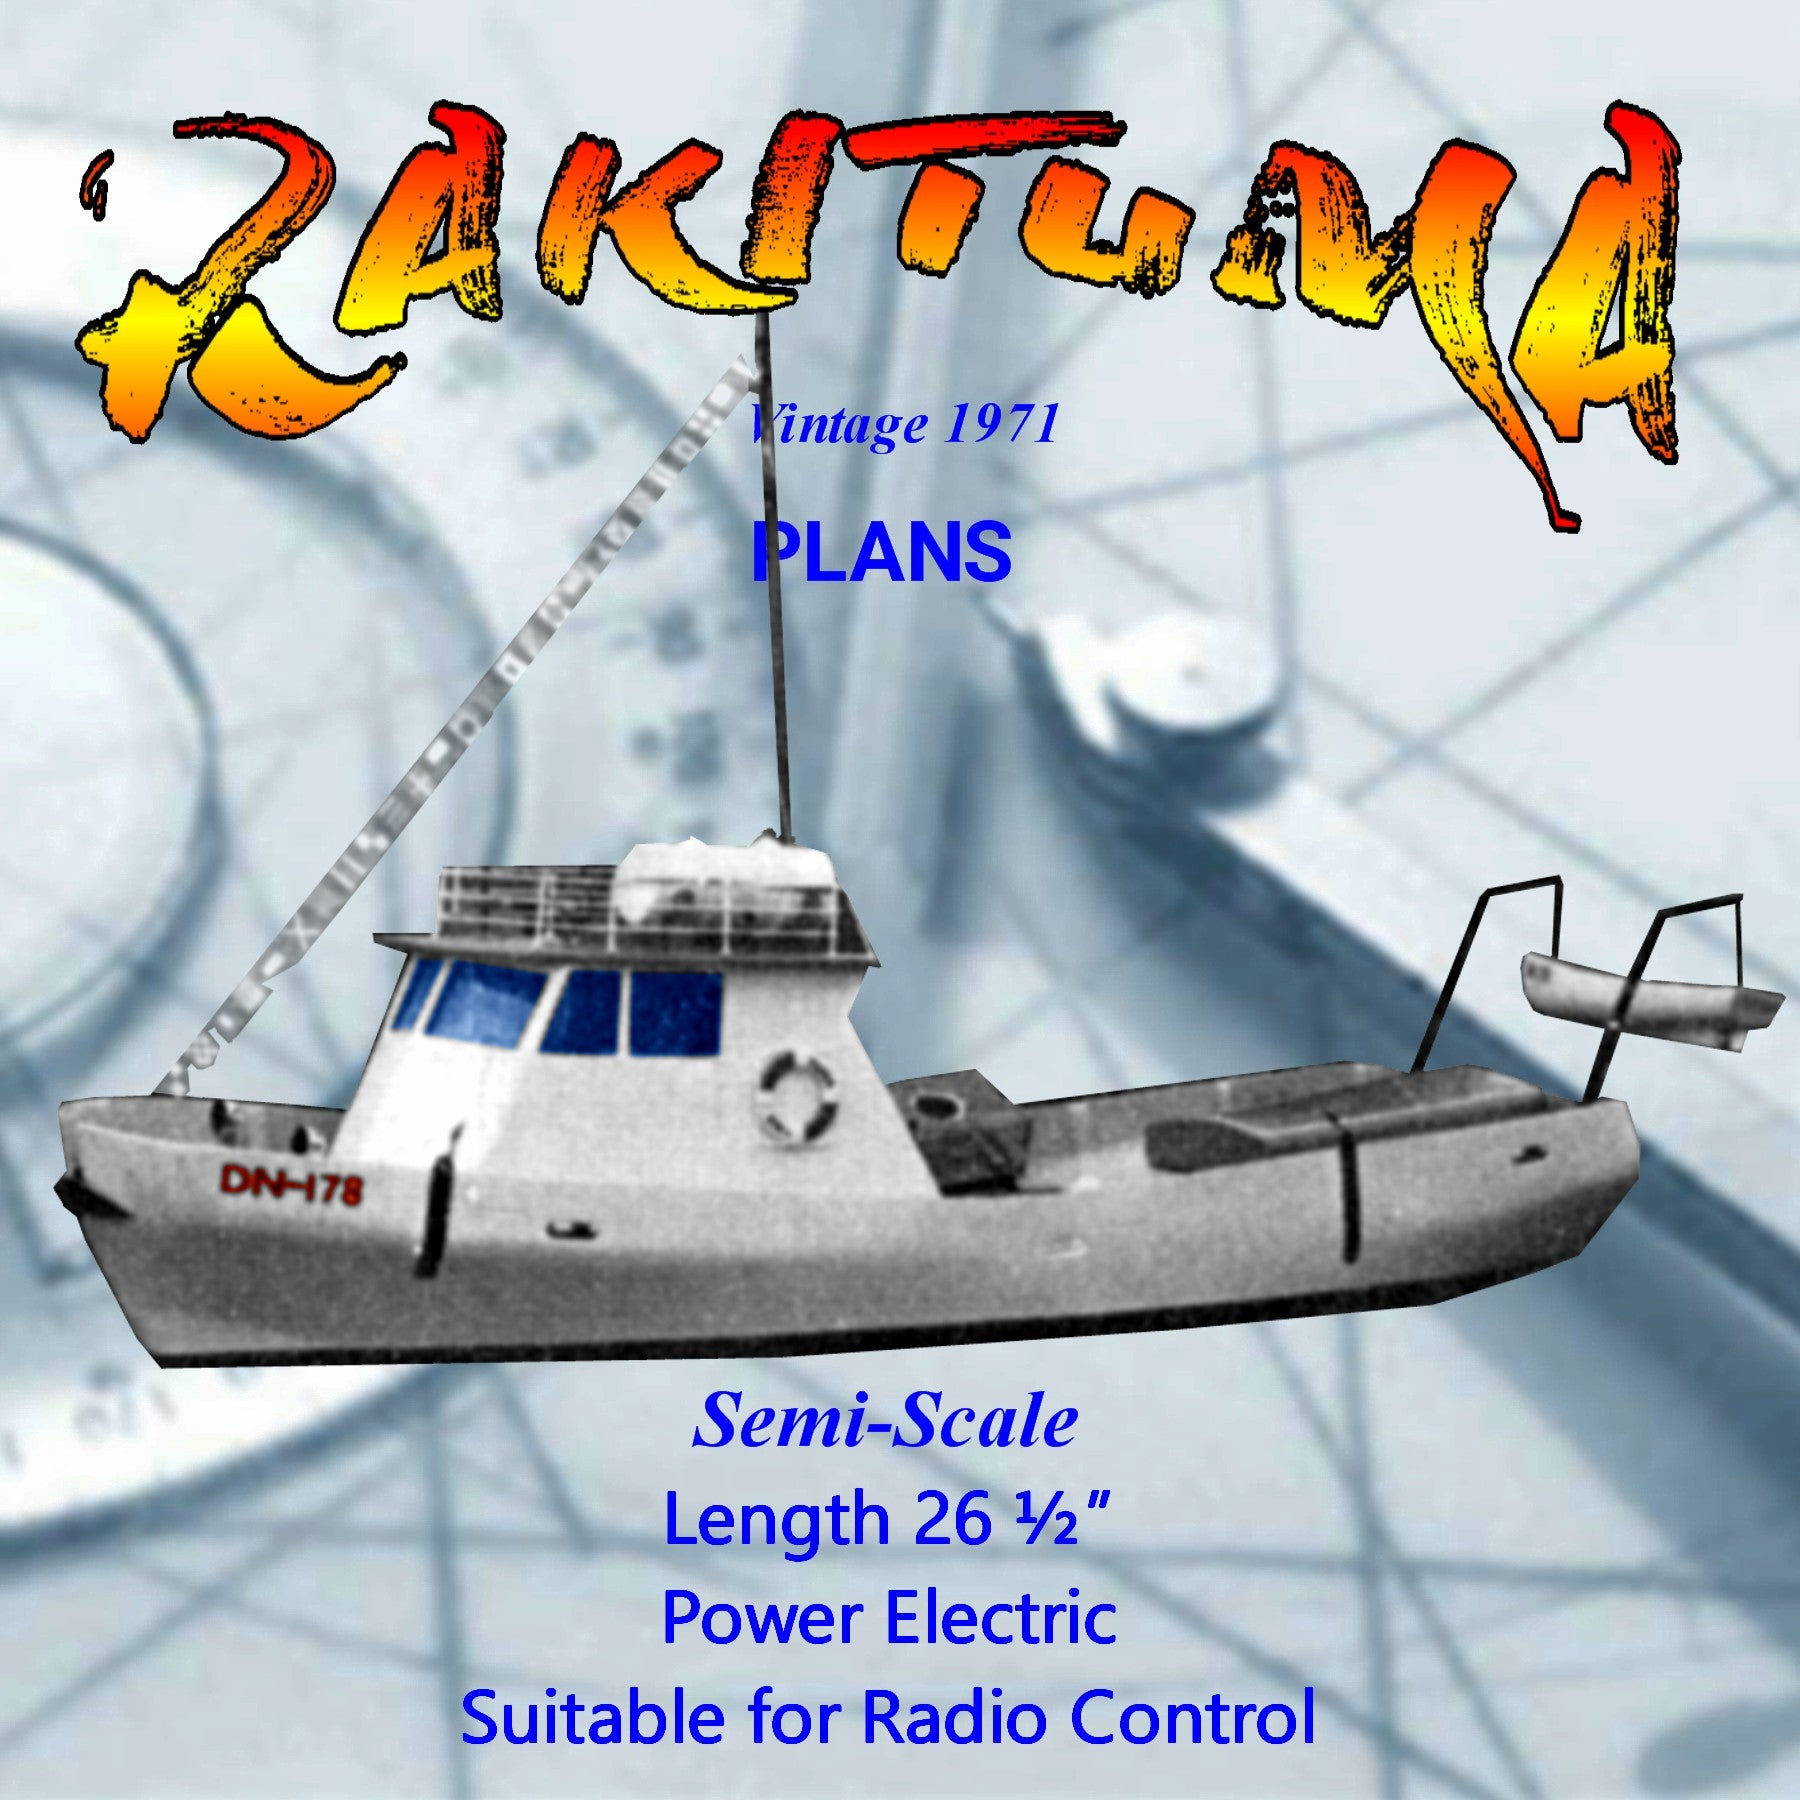 Full Size Printed Plan Semi-Scale26 1/2'New Zealand Fiordland crayfishing vessel suitable for Radio Control